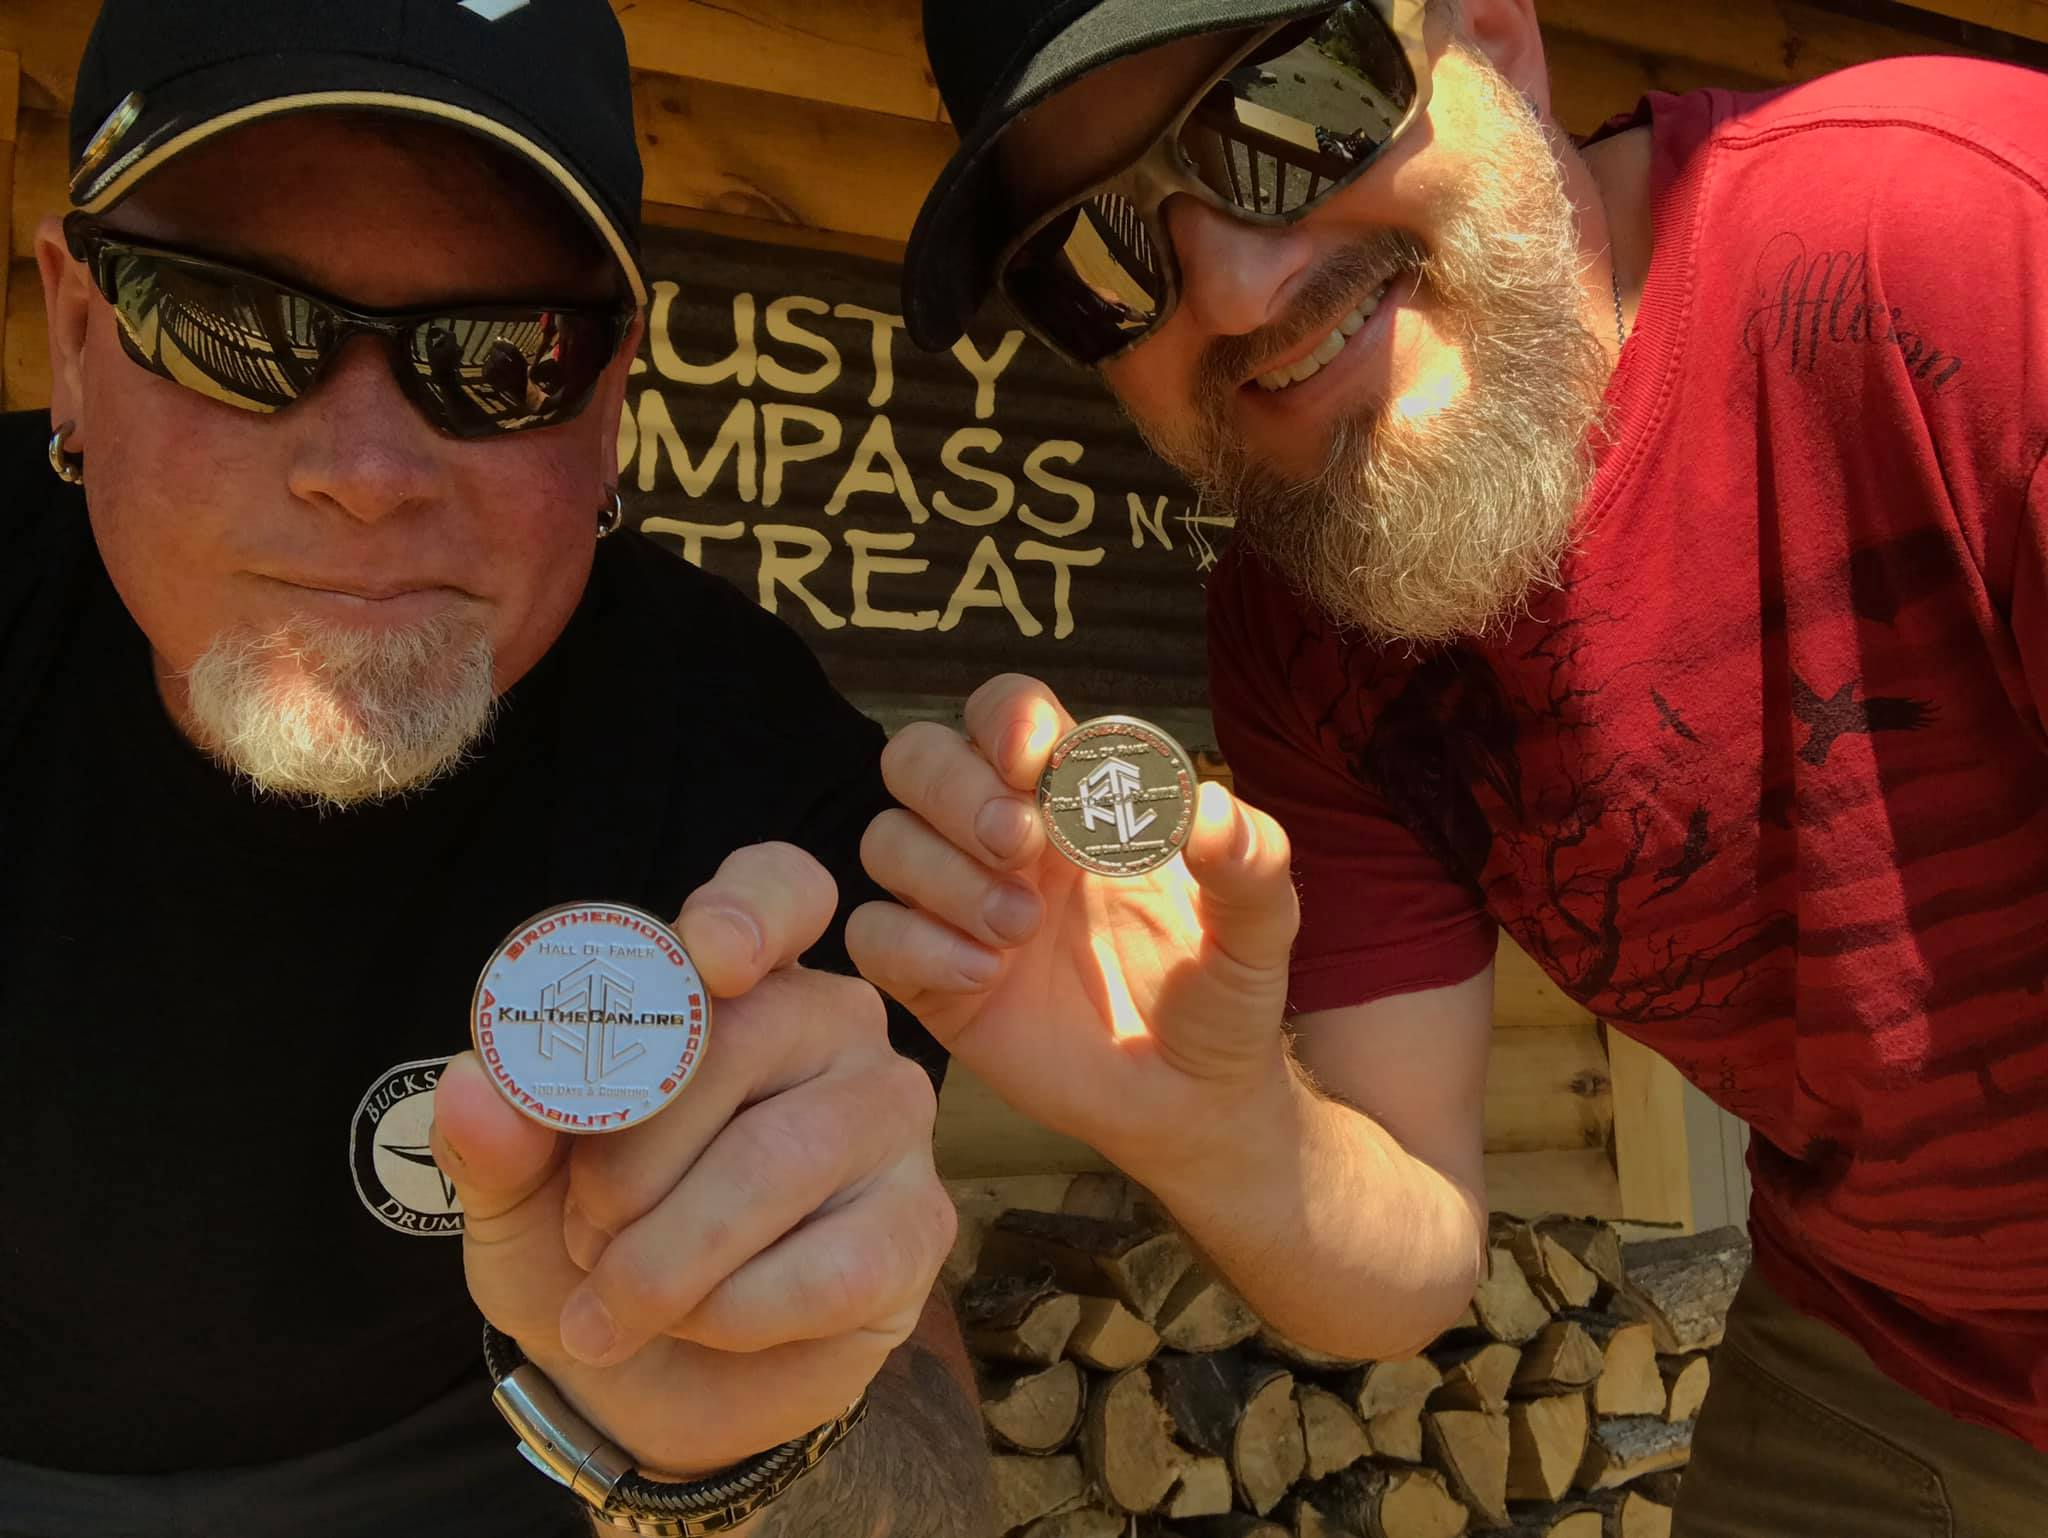 Photo of Big Brother Jack and Bretn37 – Rusty Compass Retreat